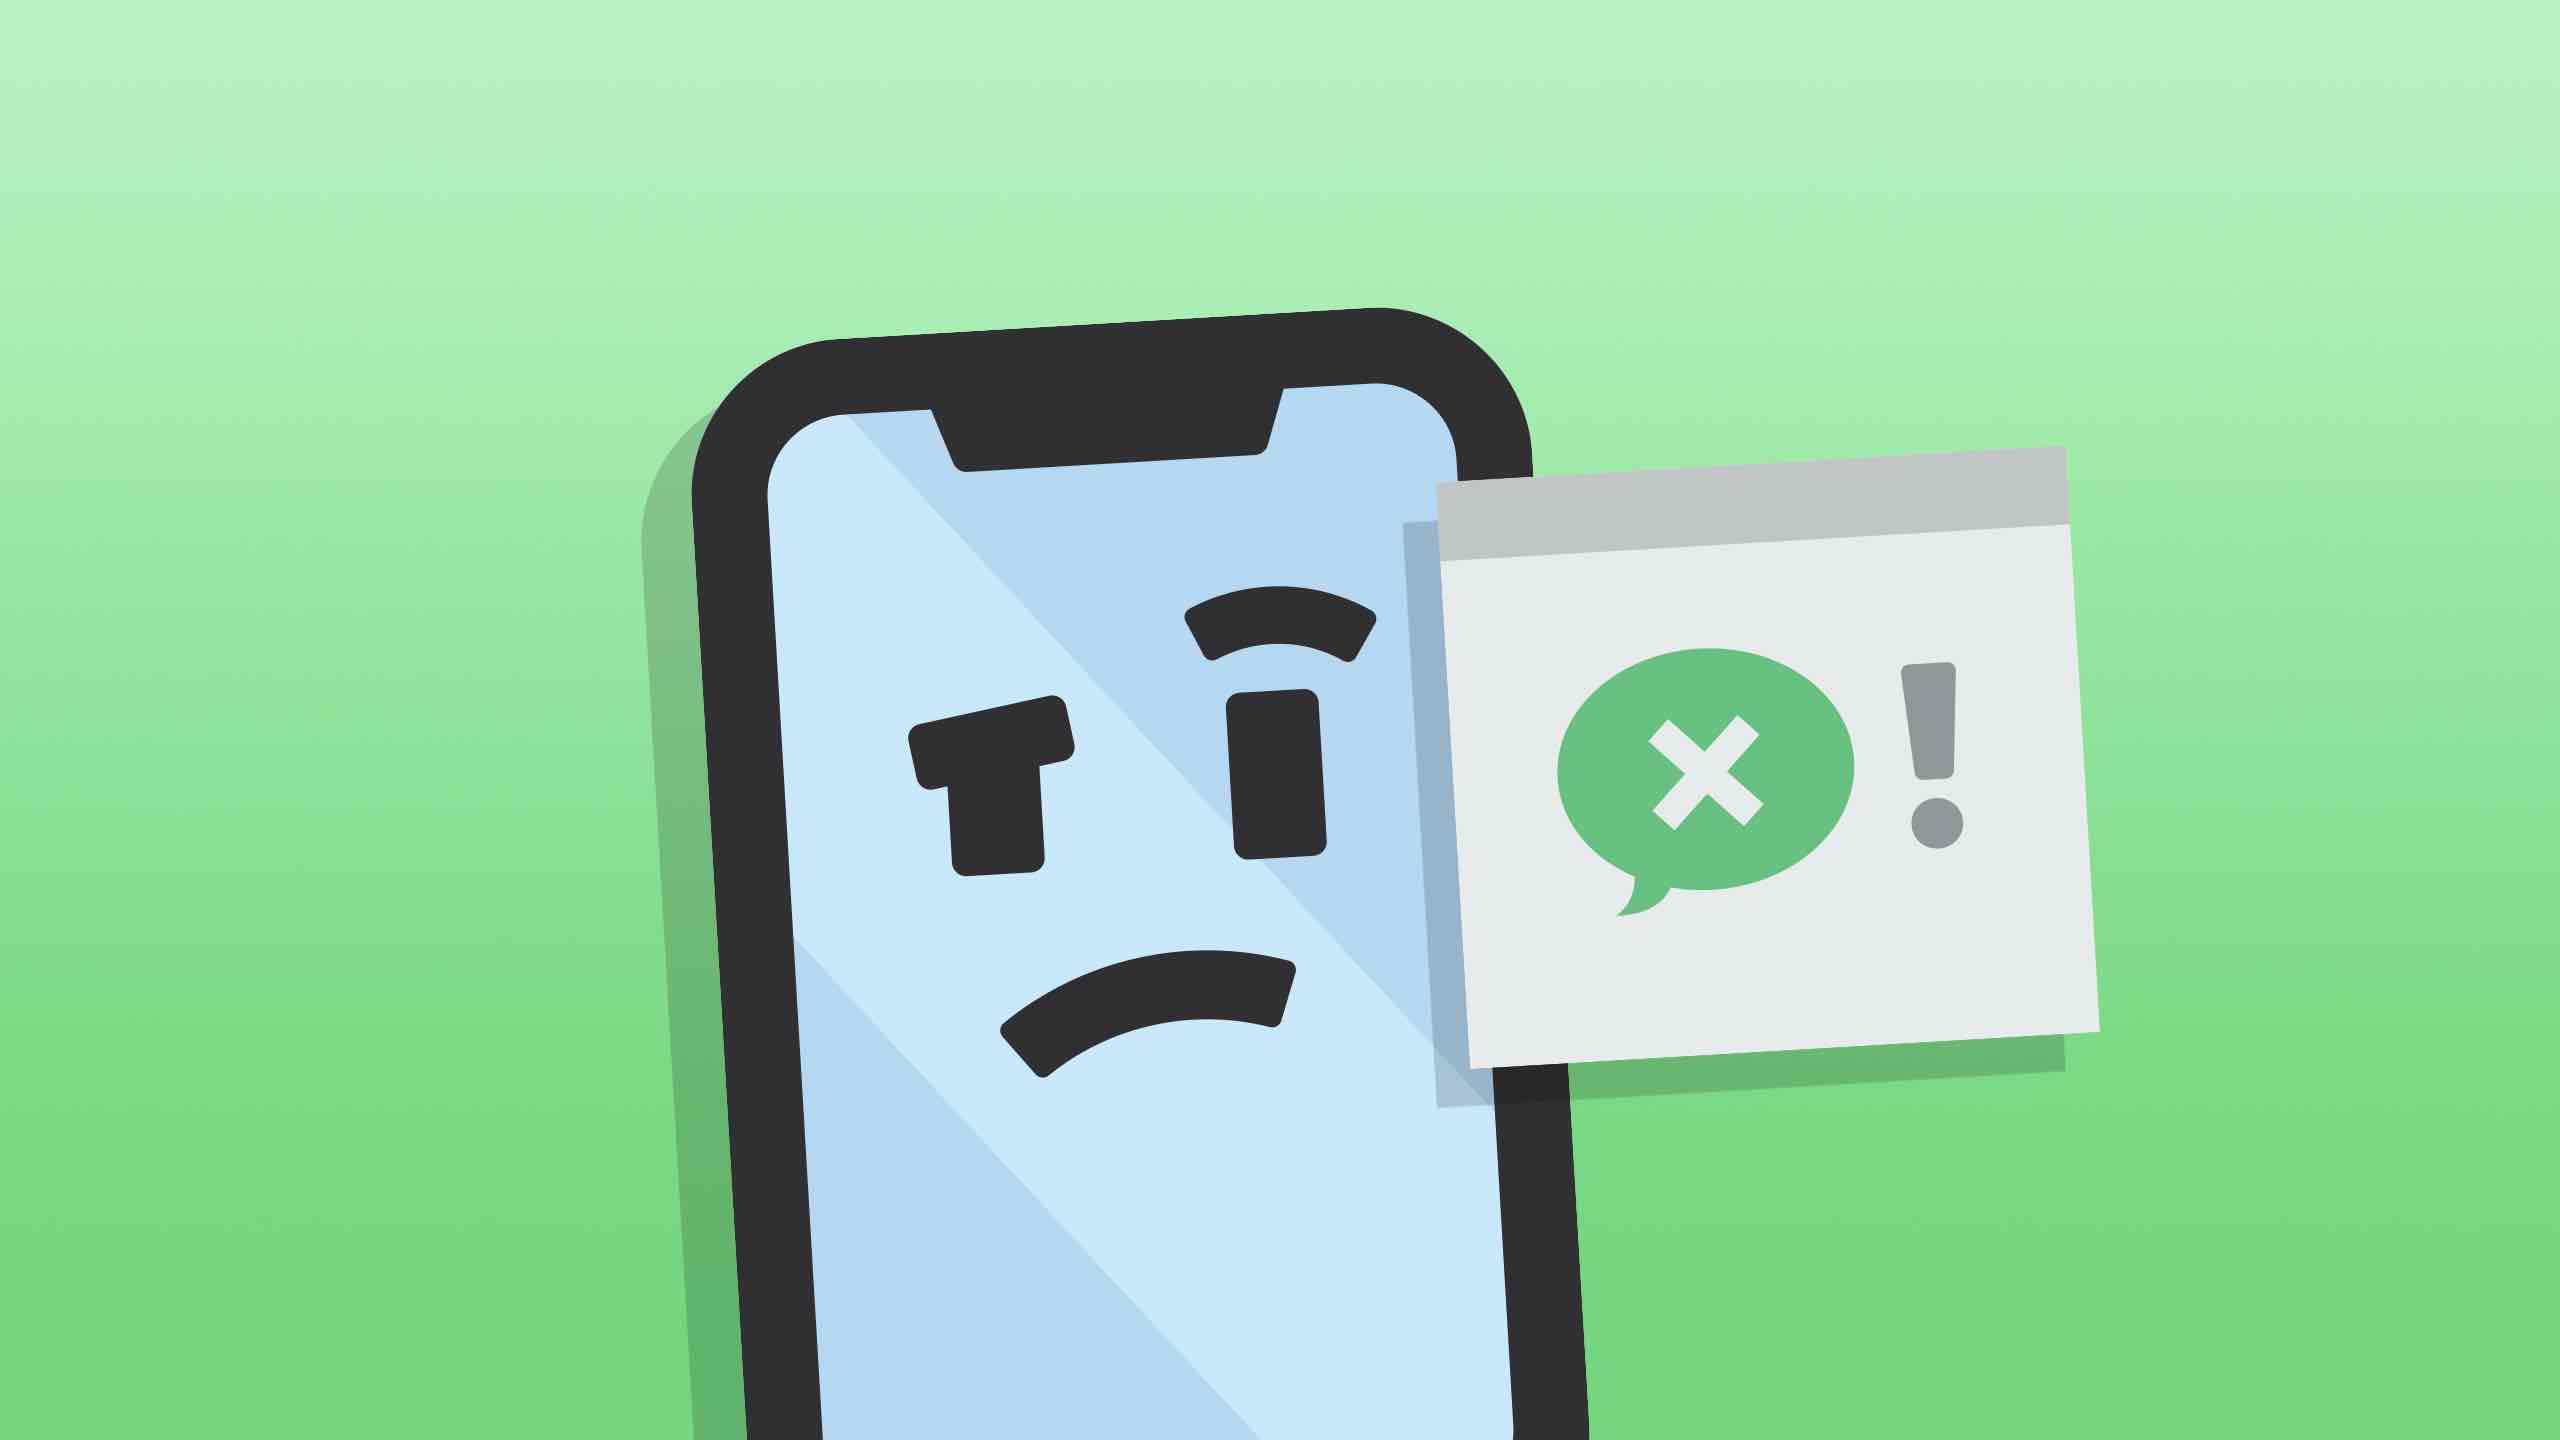 iMessage Activation Error On iPhone? Here's Why & The Fix!